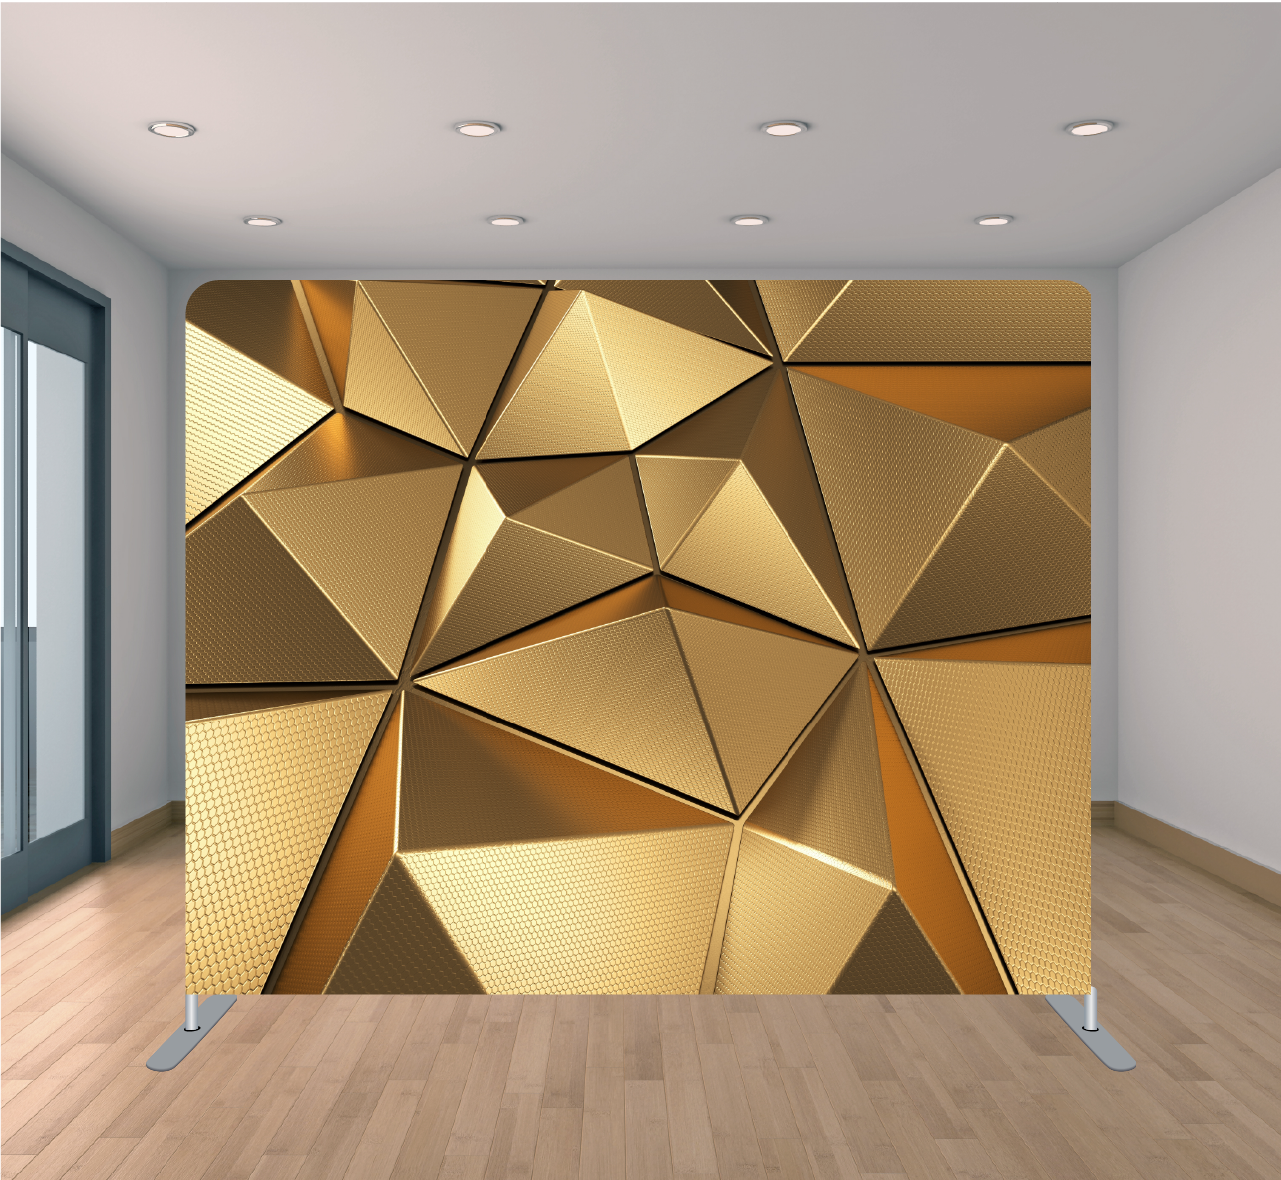 8X8ft Pillowcase Tension Backdrop- Golden Geometric